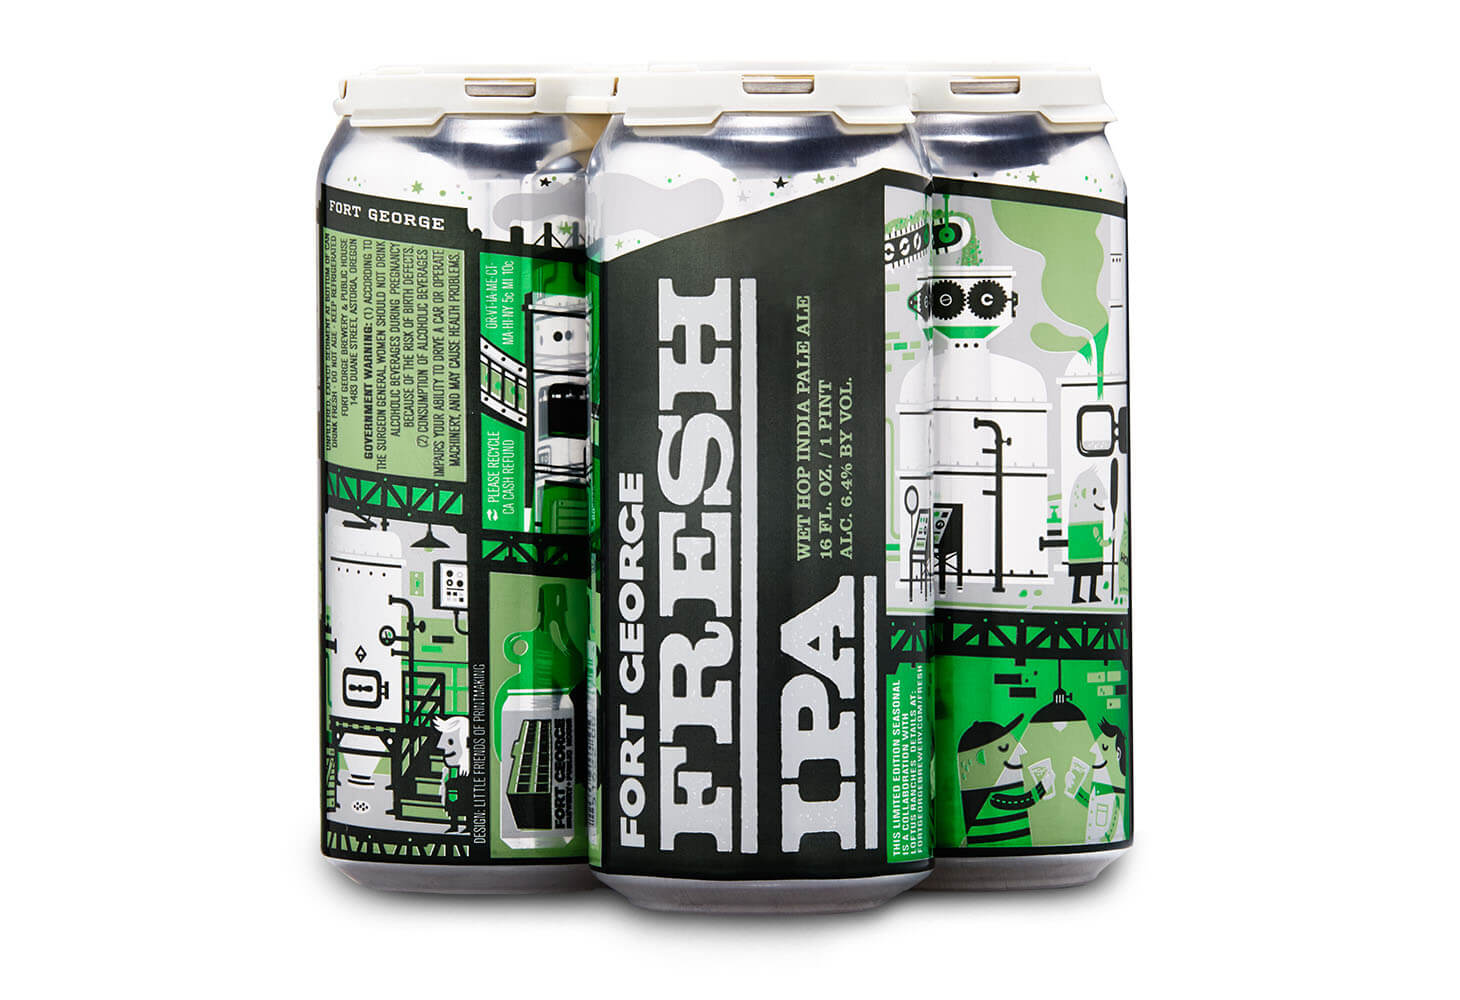 Image of Fort George Fresh IPA